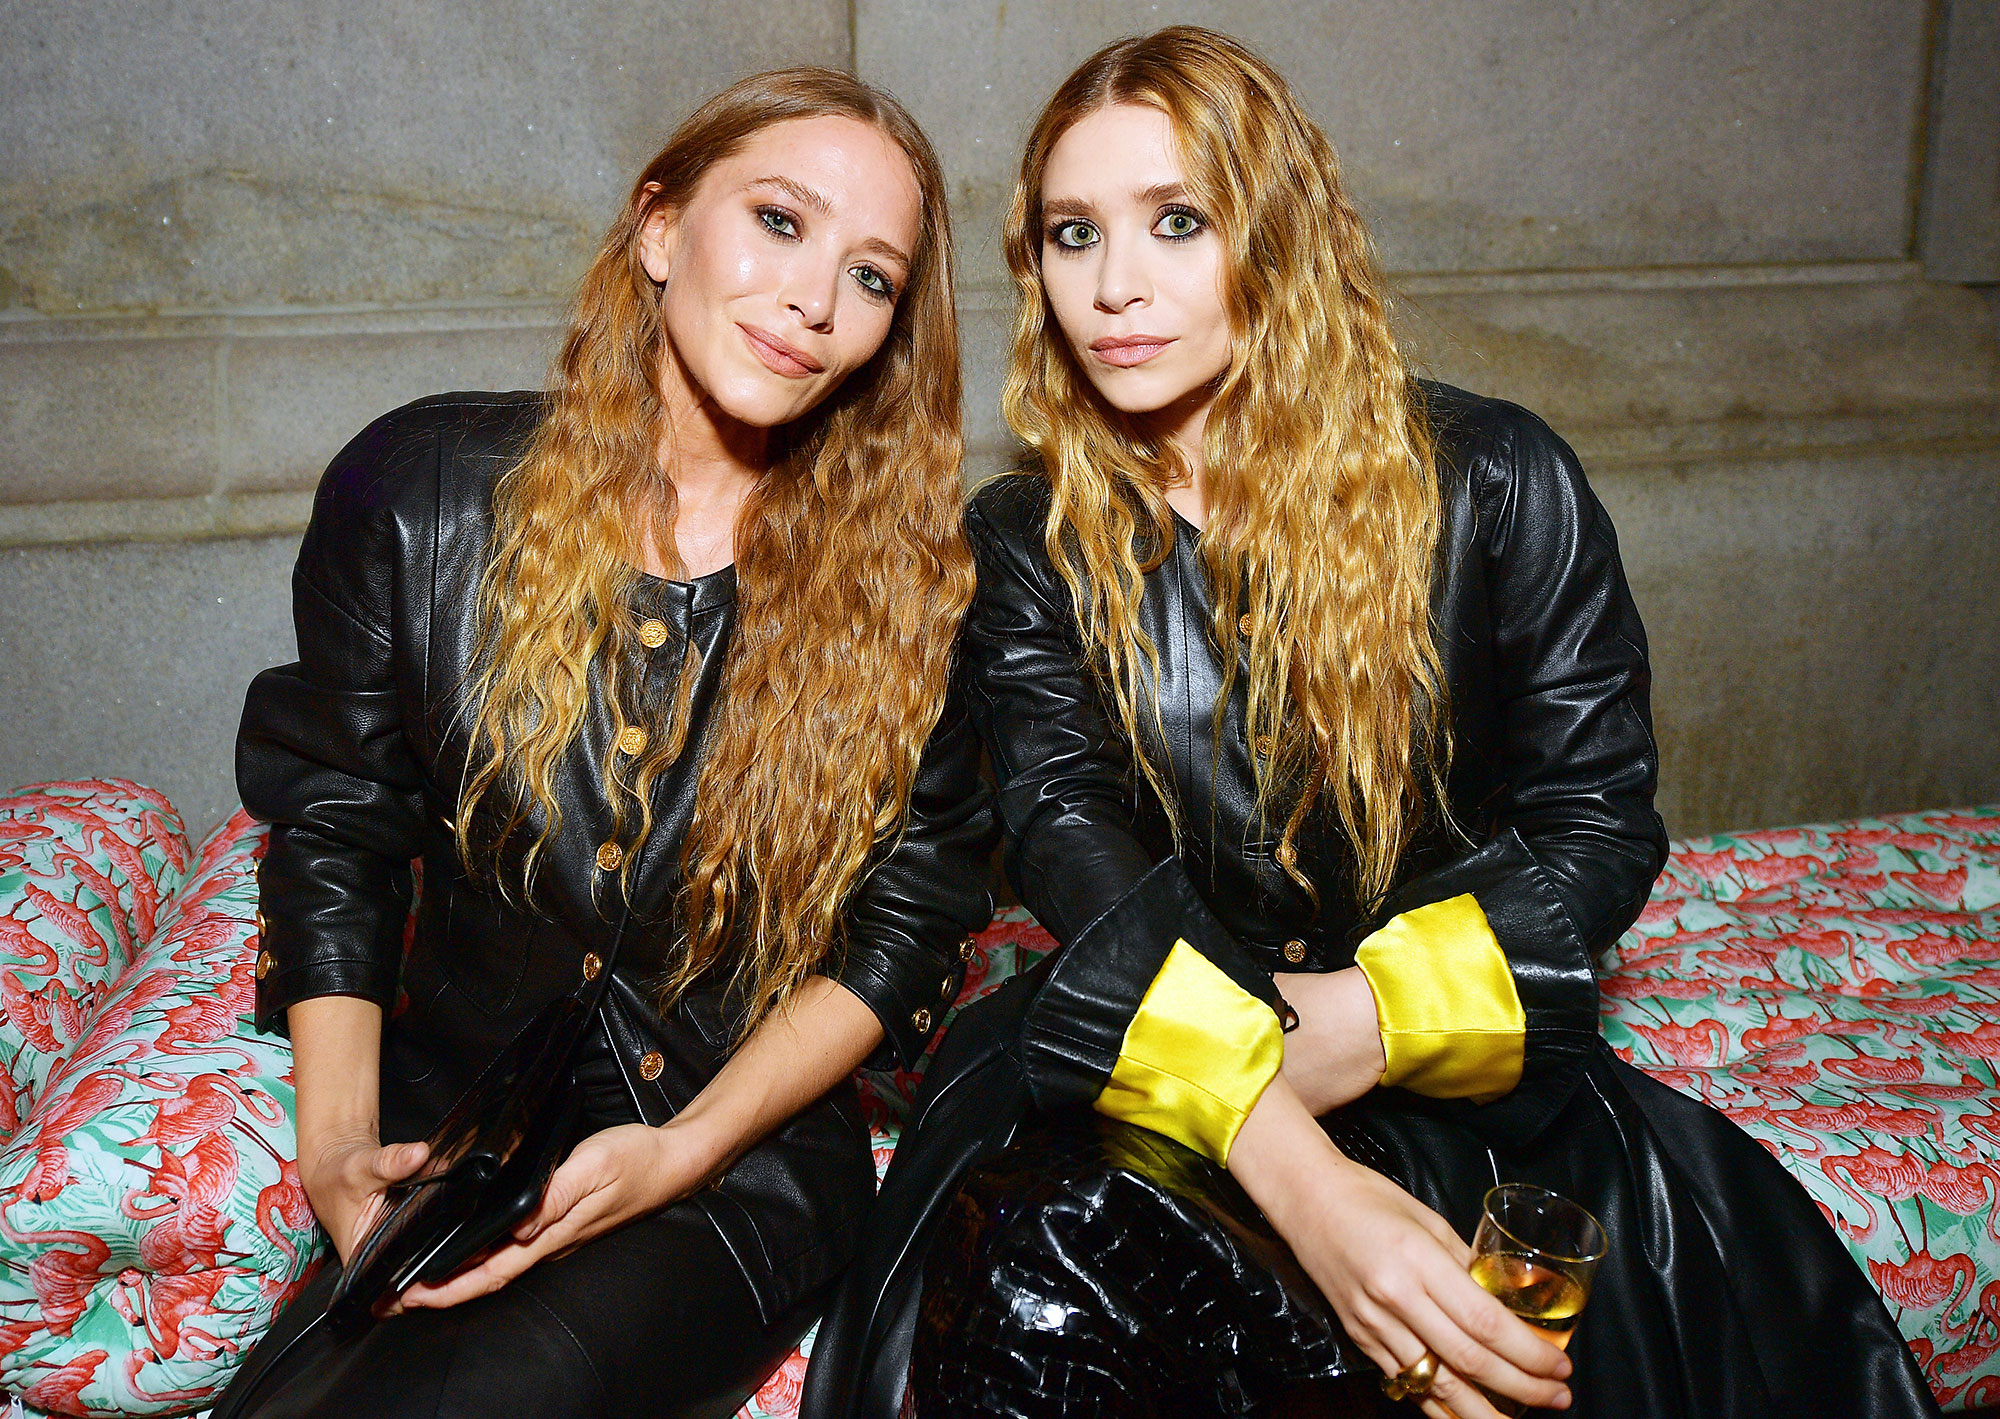 Met Gala 2019 What You Didnt See Mary-Kate Olsen Ashley Olsen - Mary-Kate and Ashley Olsen made a rare public appearance for fashion's biggest night.